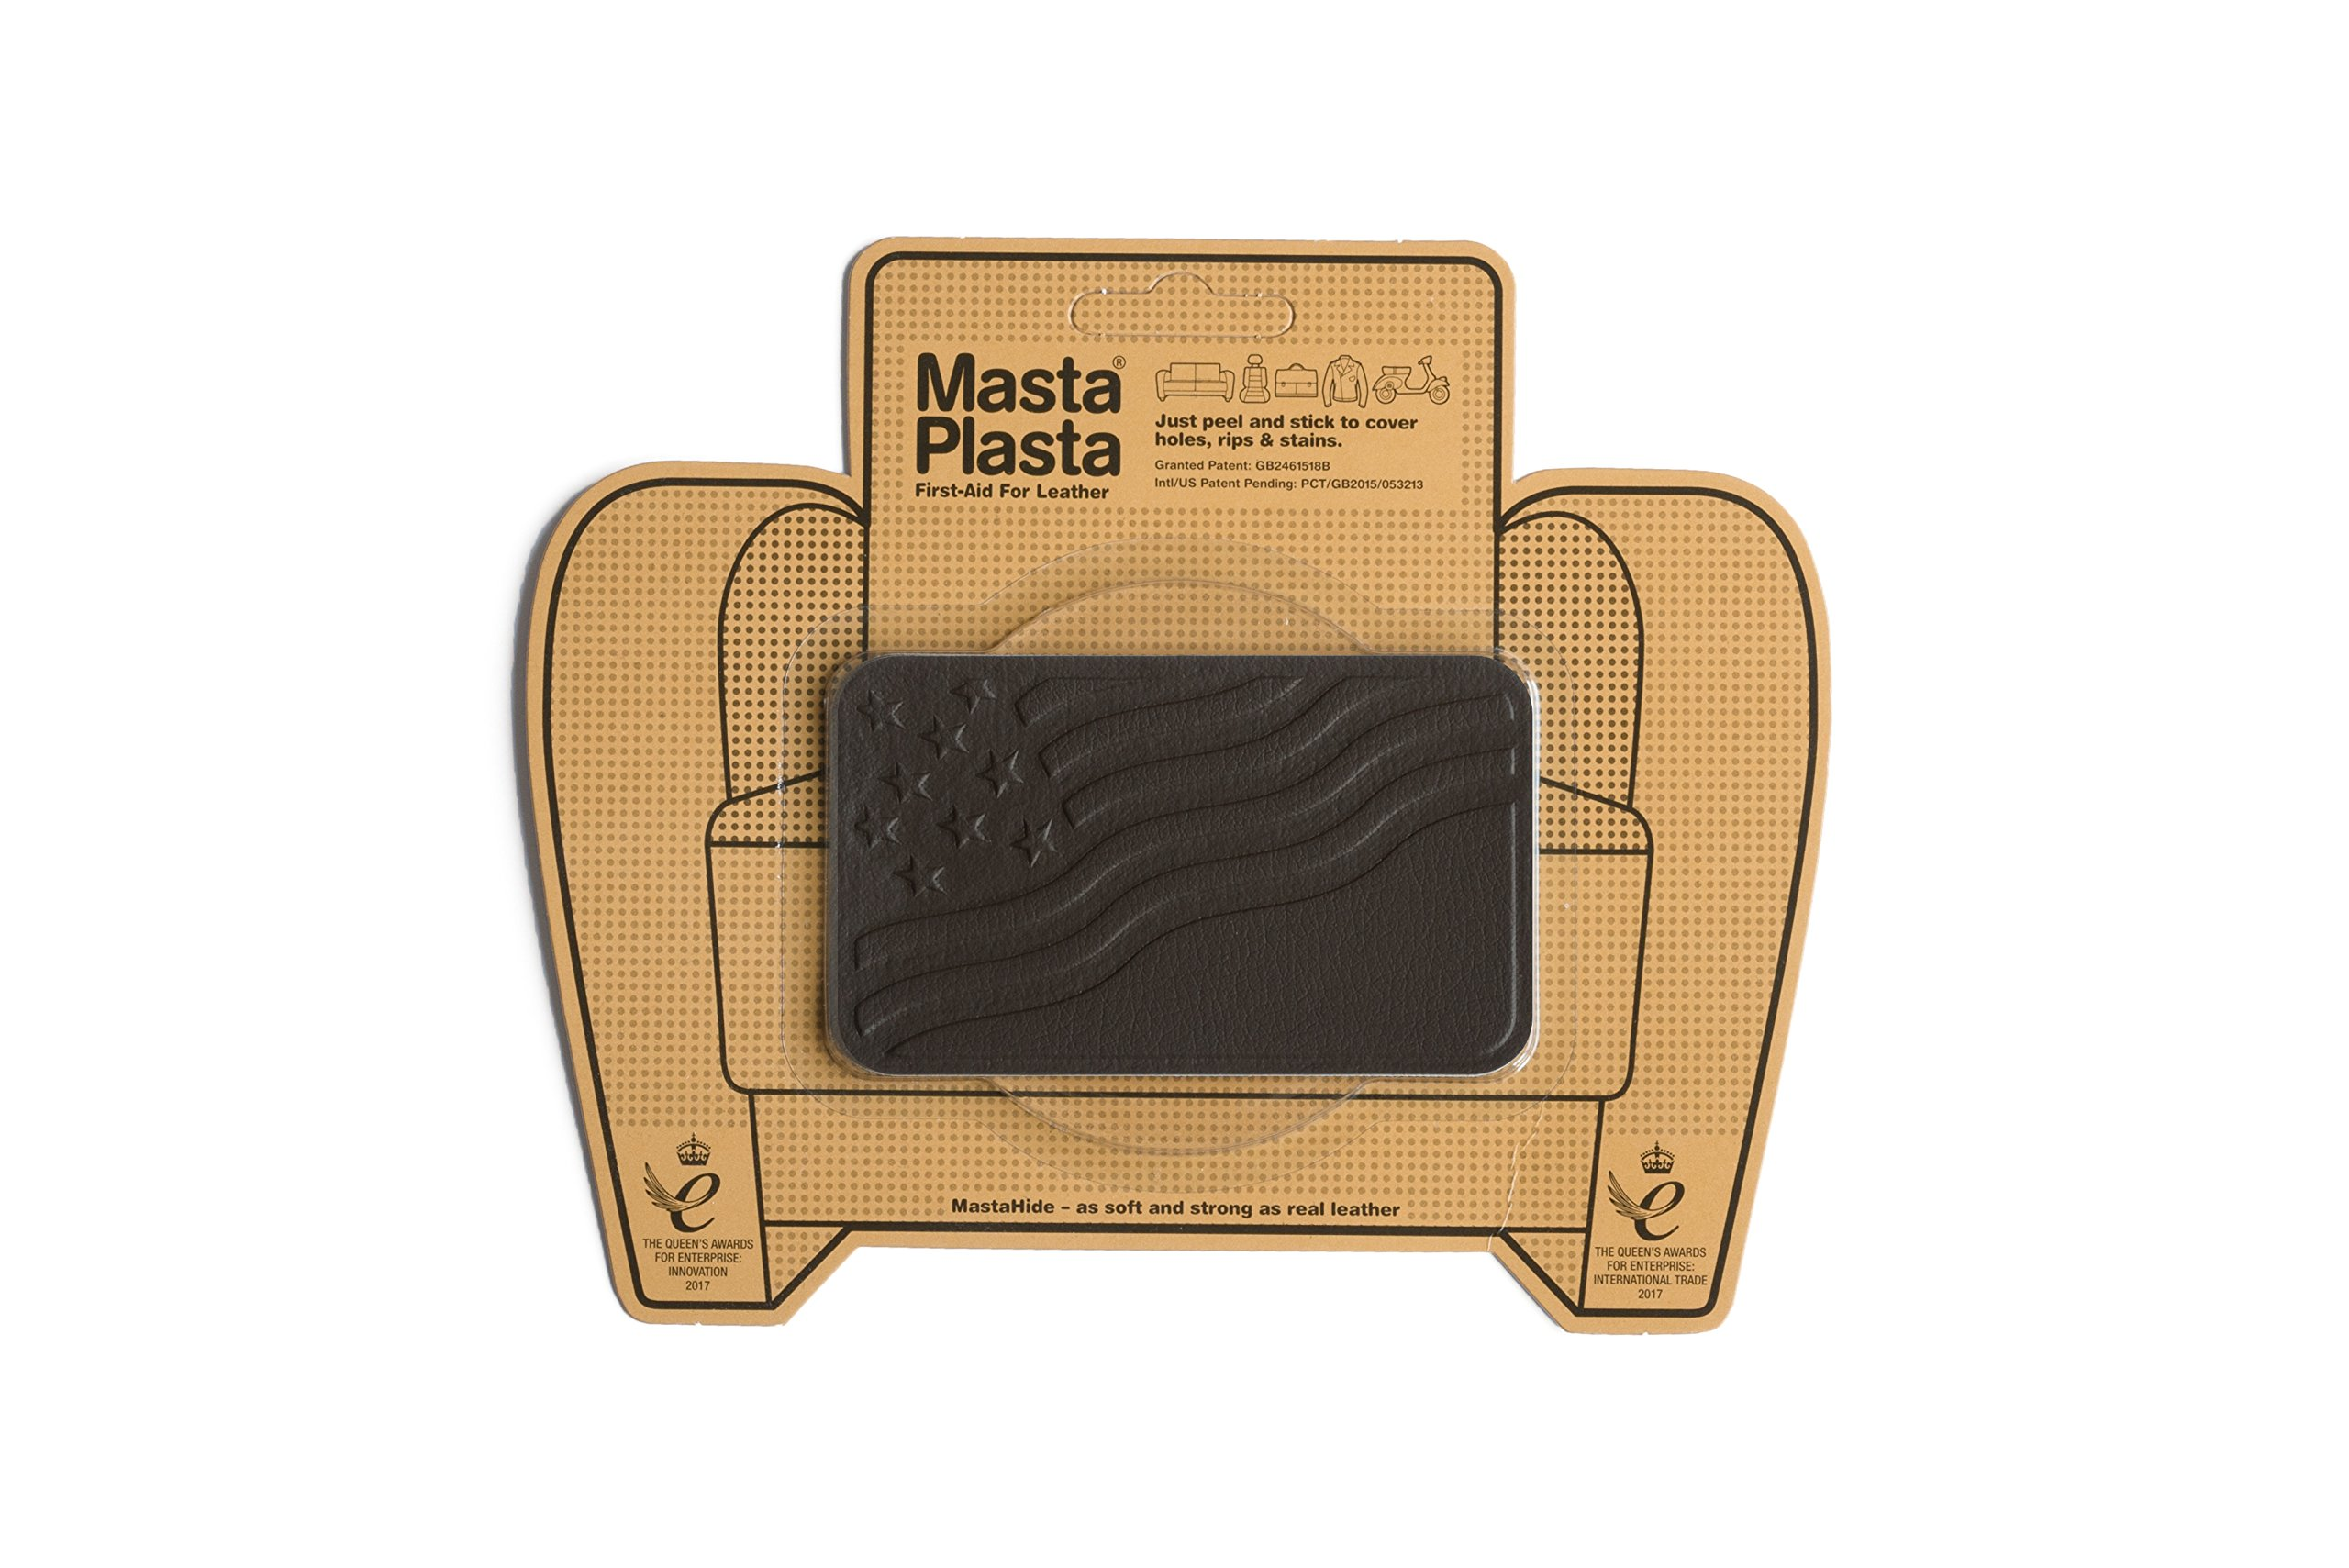 MastaPlasta, Leather Repair Patch, First-aid for Sofas, Car Seats, Handbags, Jackets, etc. Dark Brown Color, Flag 4-inch by 2.4-inch, Designs Vary